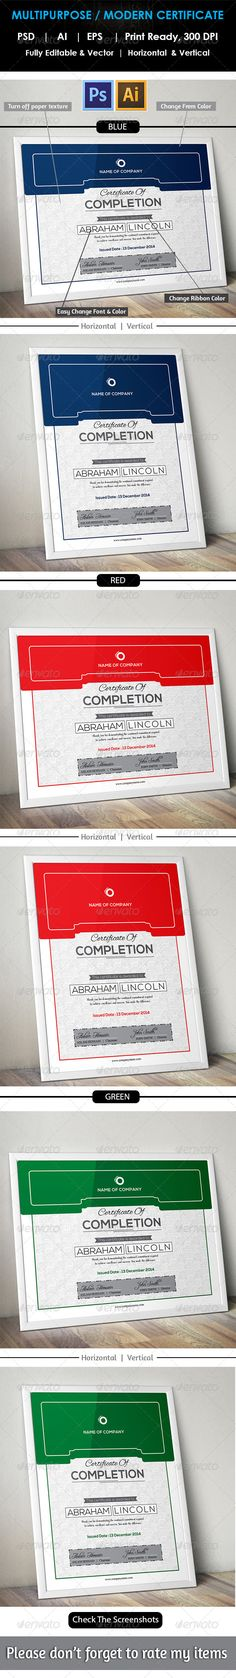 Certificate  Certificate Templates Adobe Illustrator And